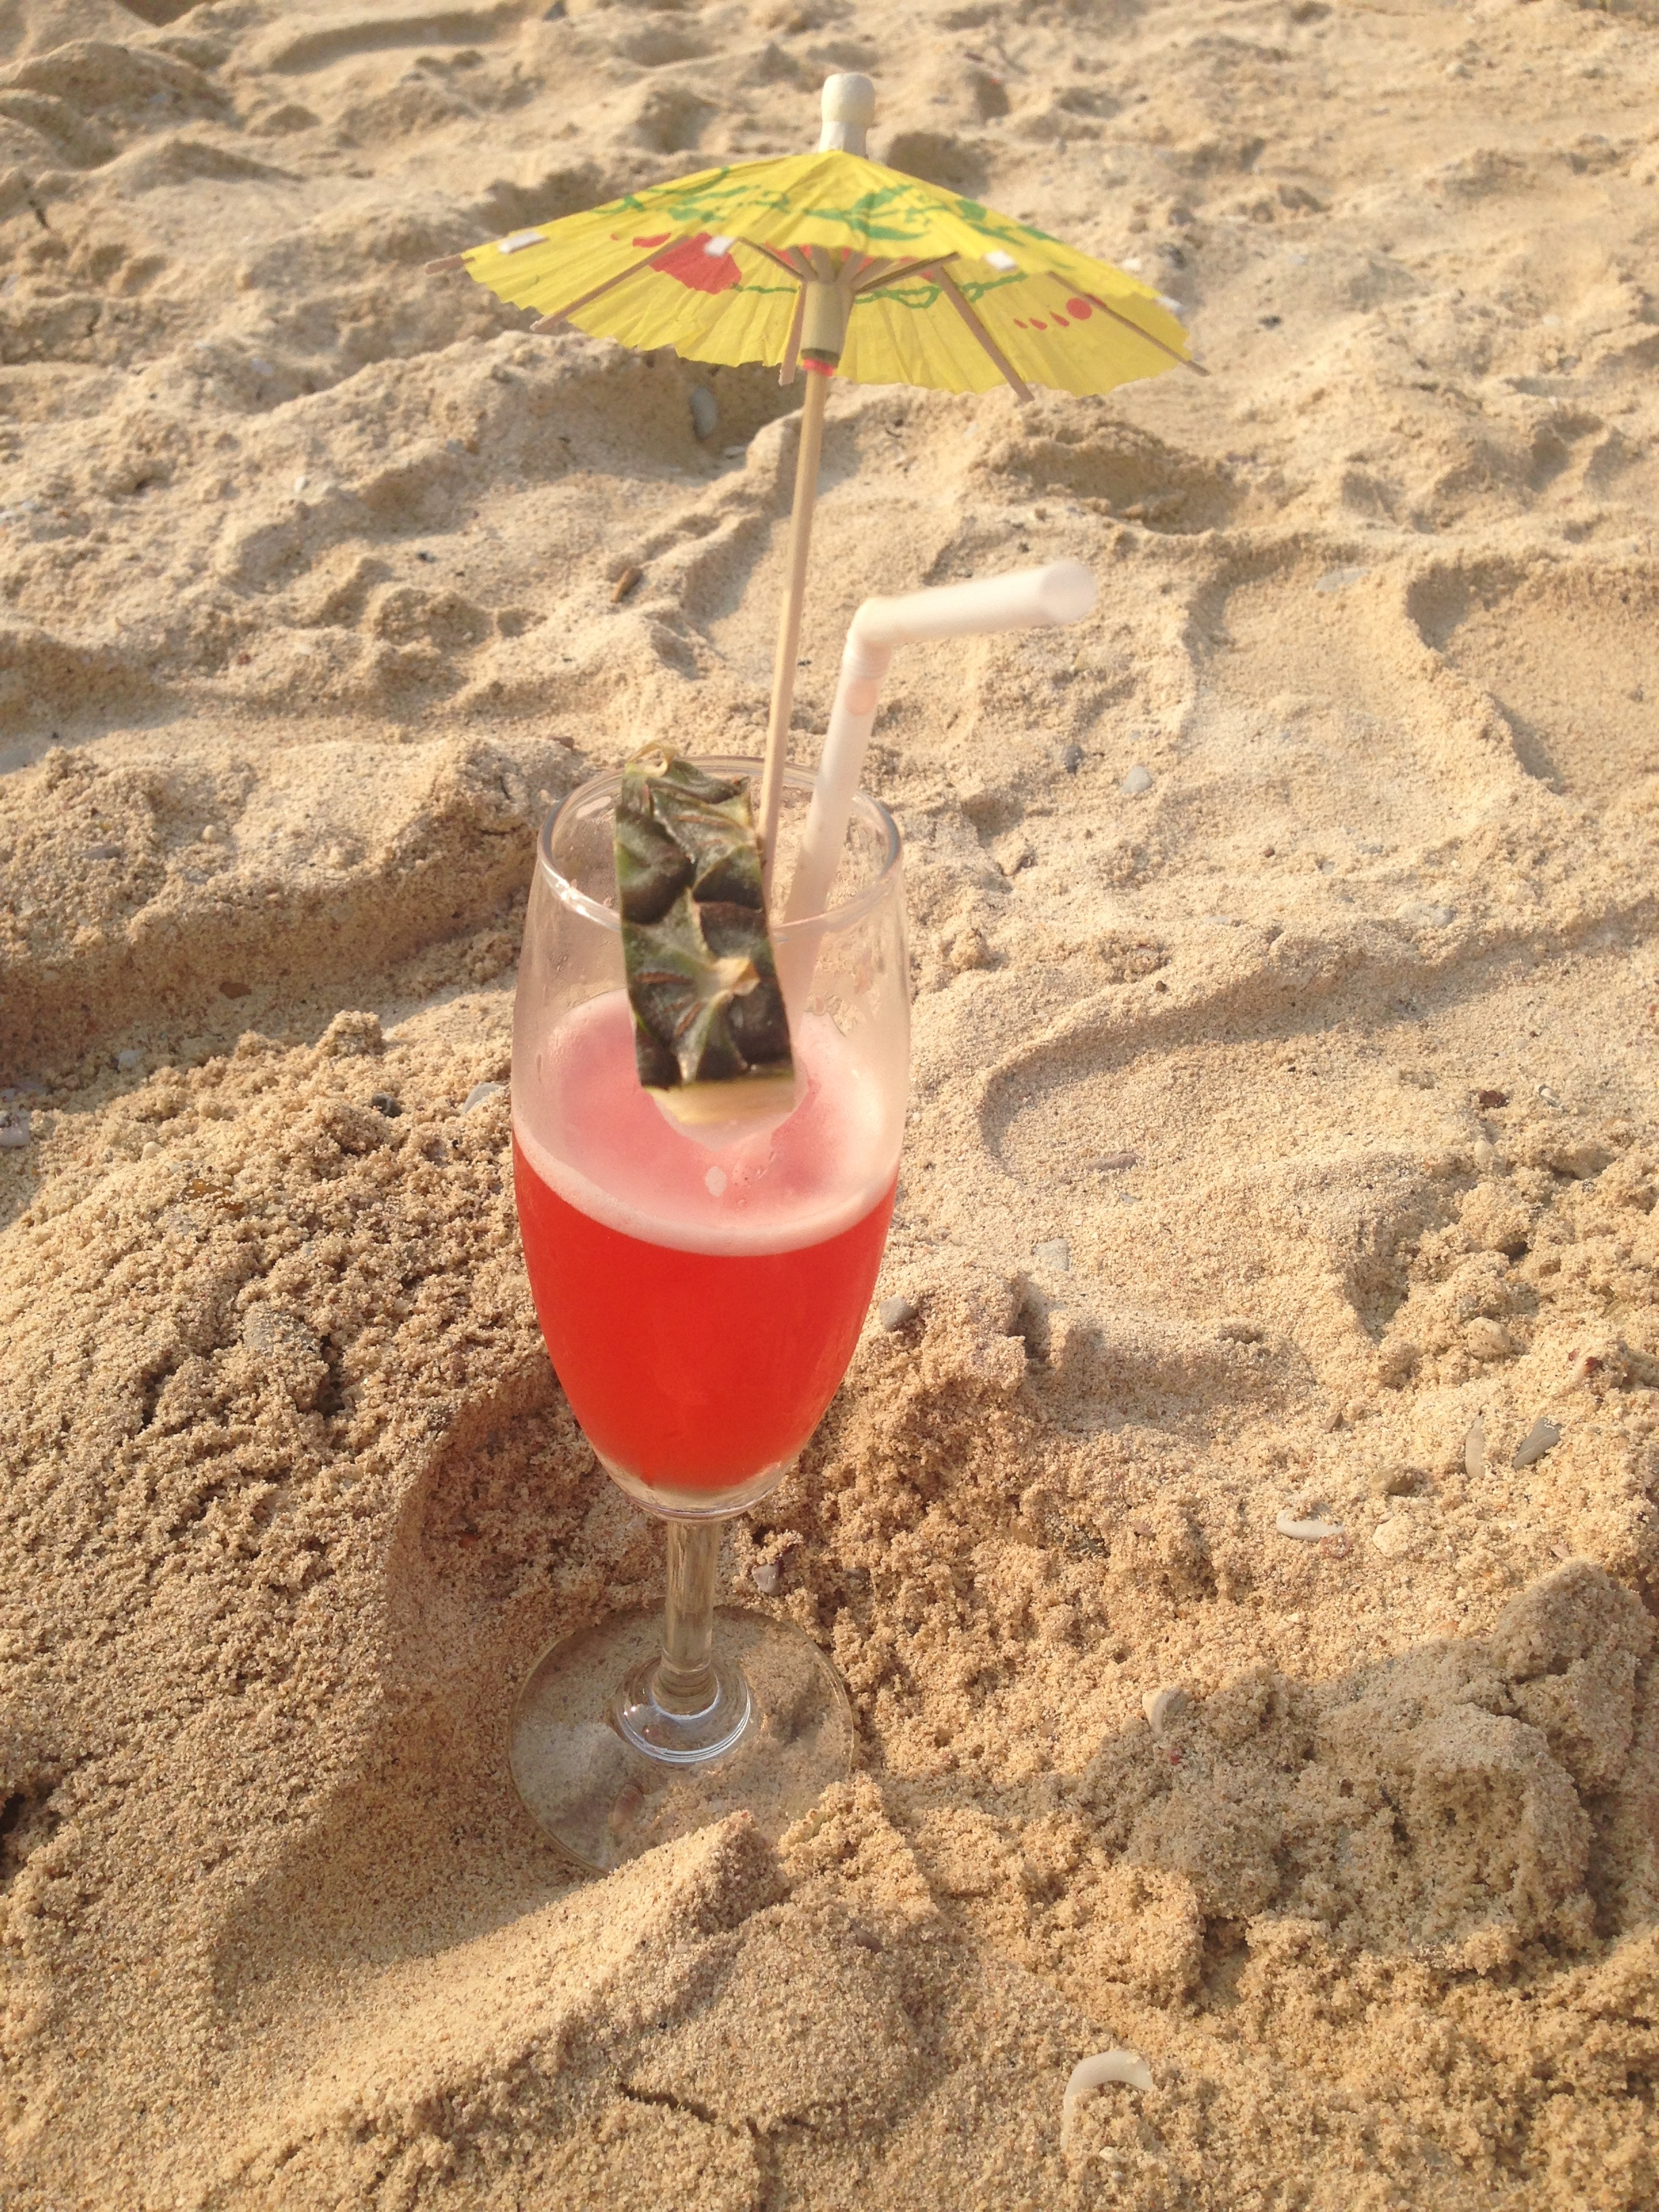 Beach drinking. How I spent all my weekends, and survived the upcoming week of teaching small children.